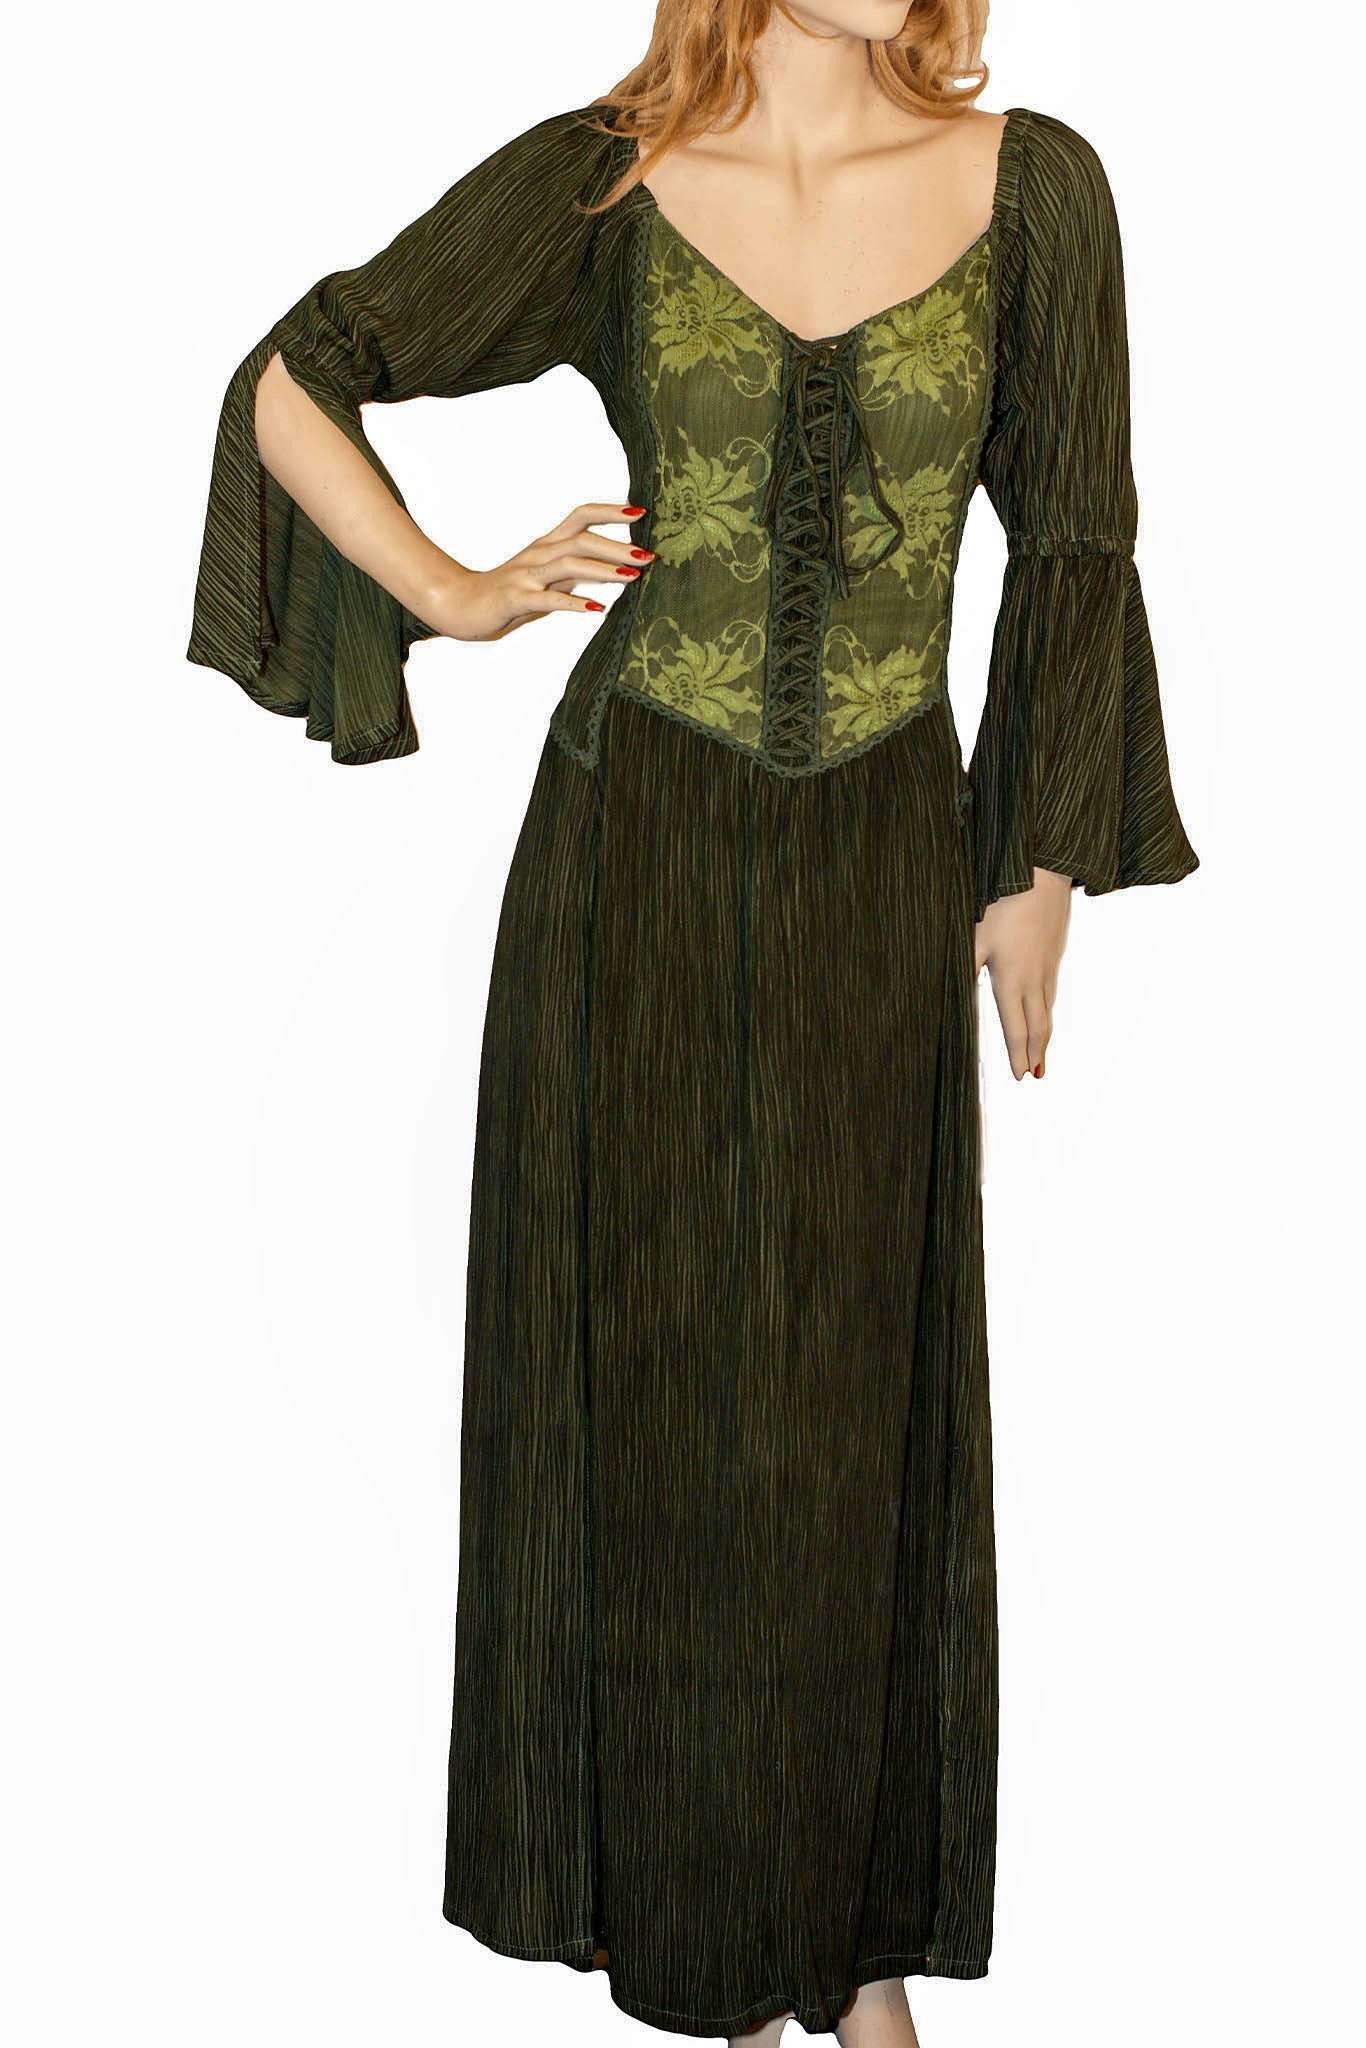 Renaissance Dress Victorian Dress Green